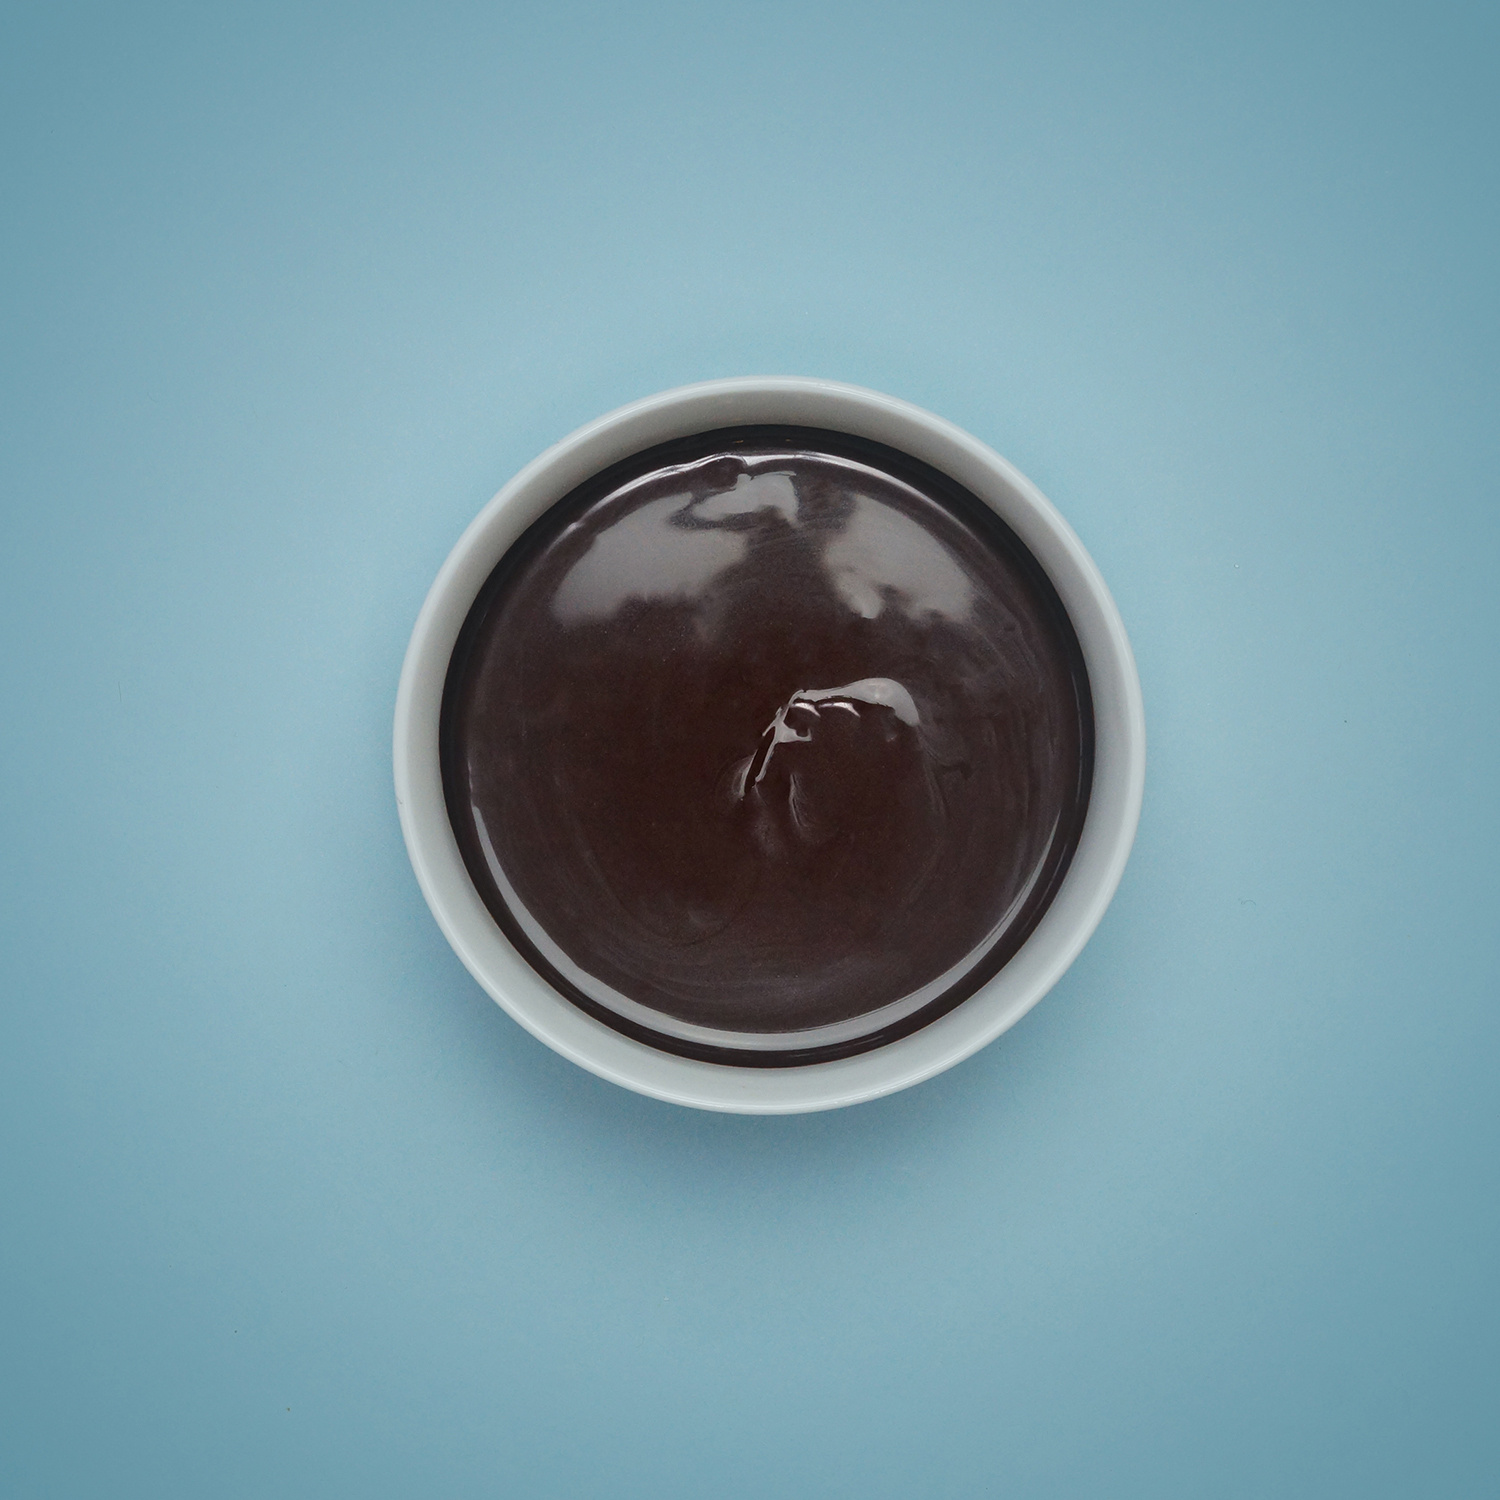 Chocolate in Bowl on Blue 2 - Hero-V1.jpg